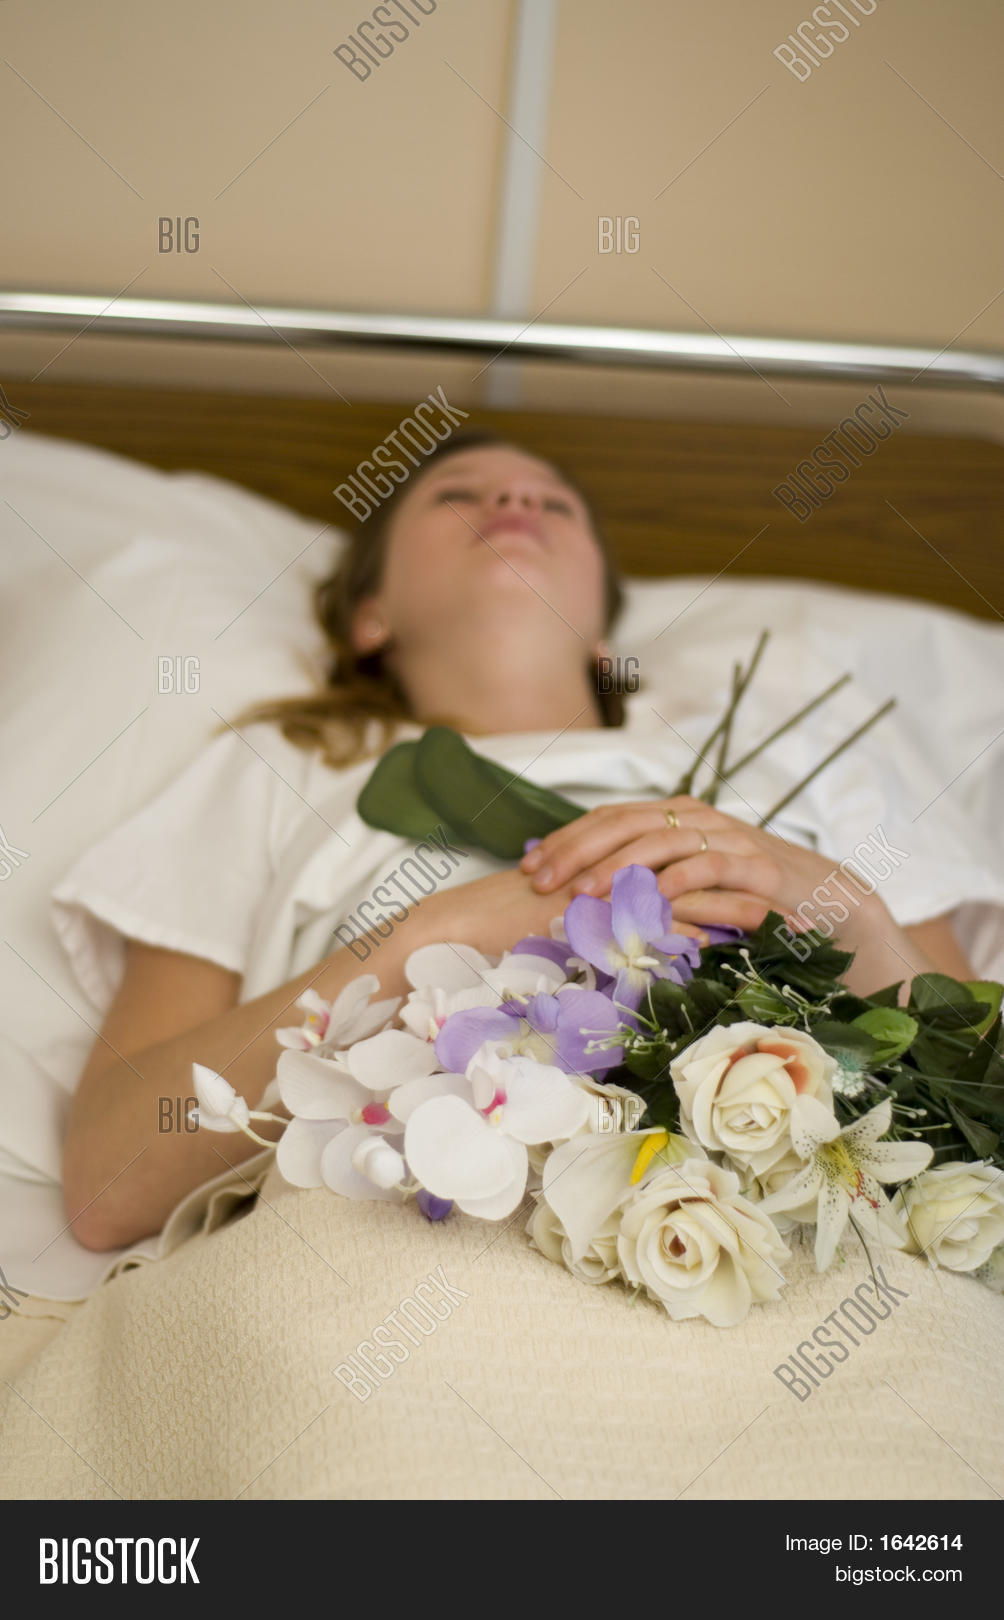 Dead Young Girl Bed Image Photo Bigstock